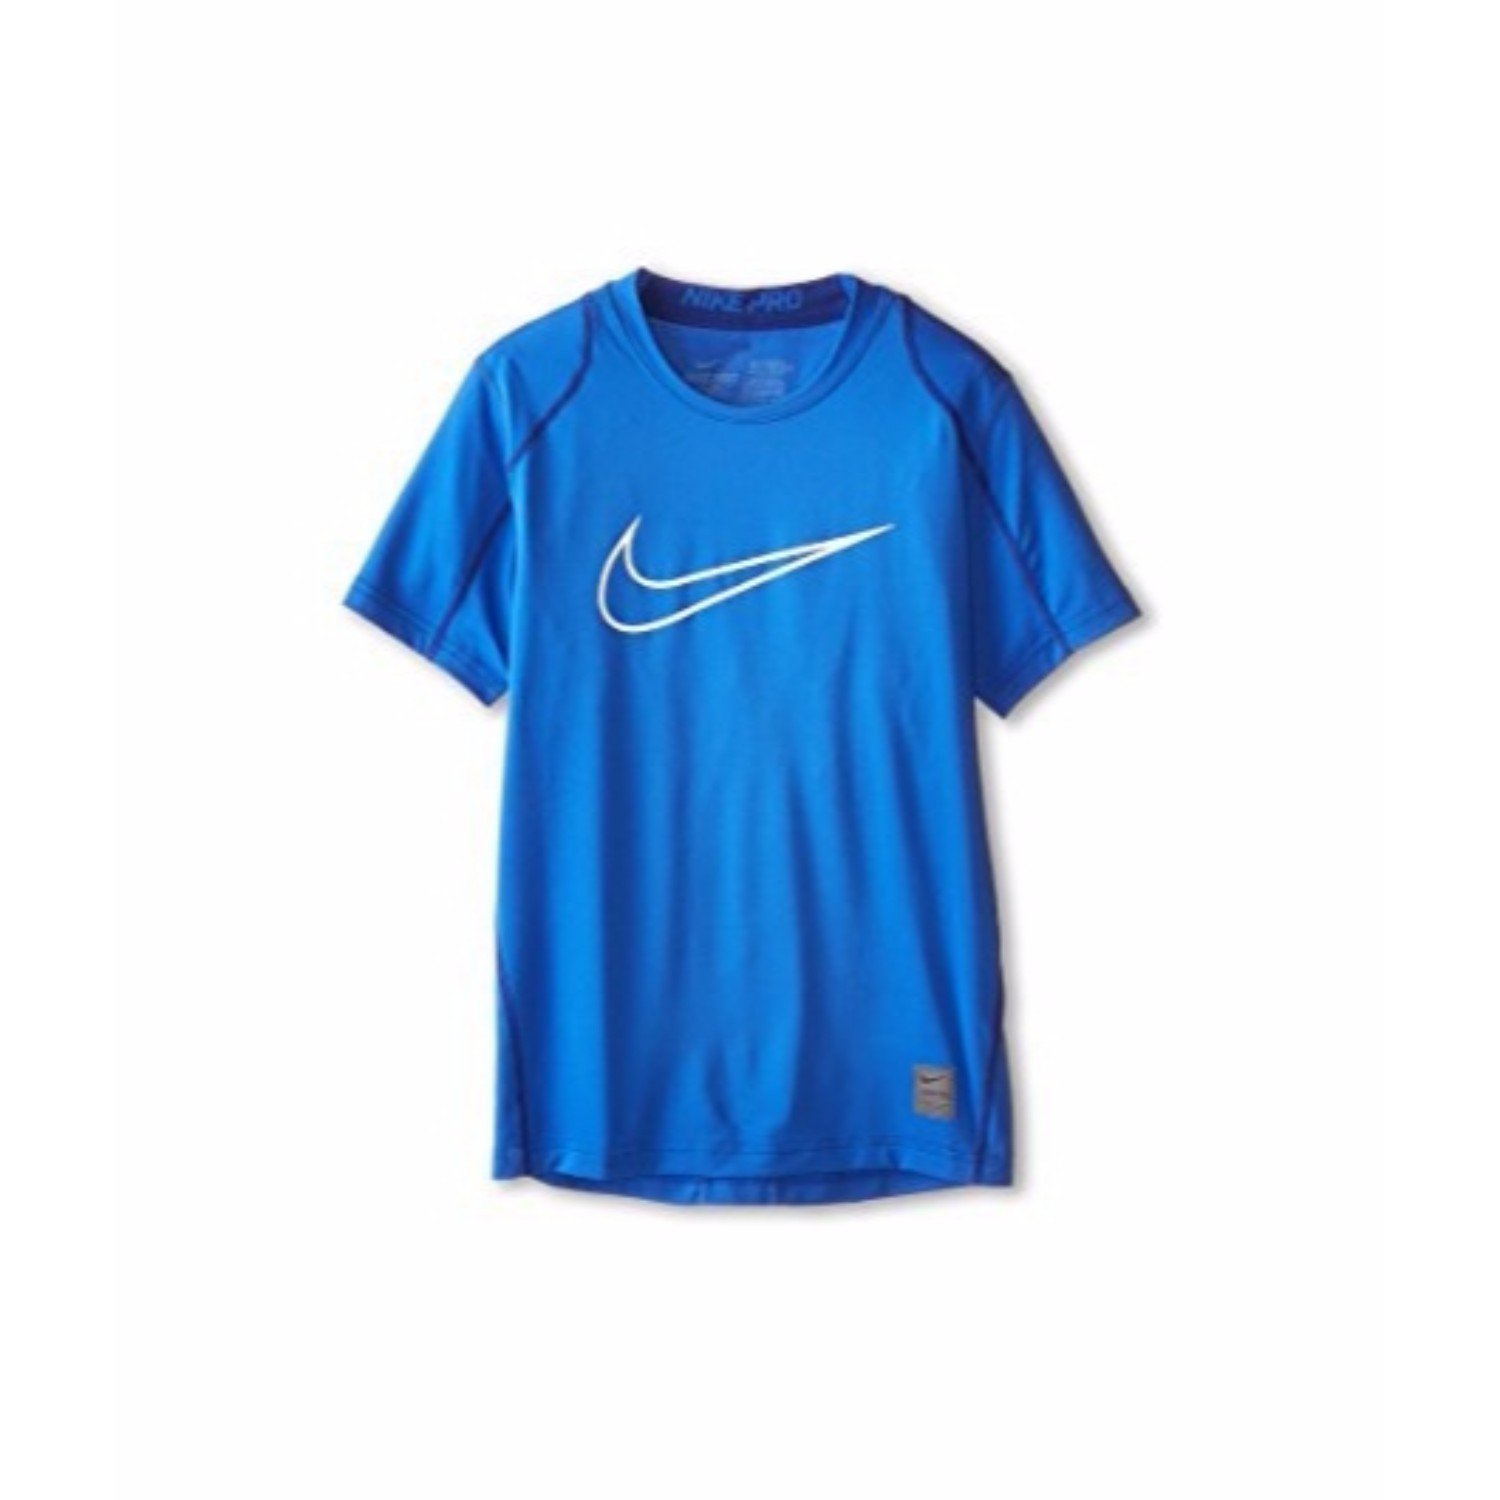 Nike Pro Cool HBR Fitted Boys Short-Sleeve Top (X-Large, Game Royal/White) (3 Pack)